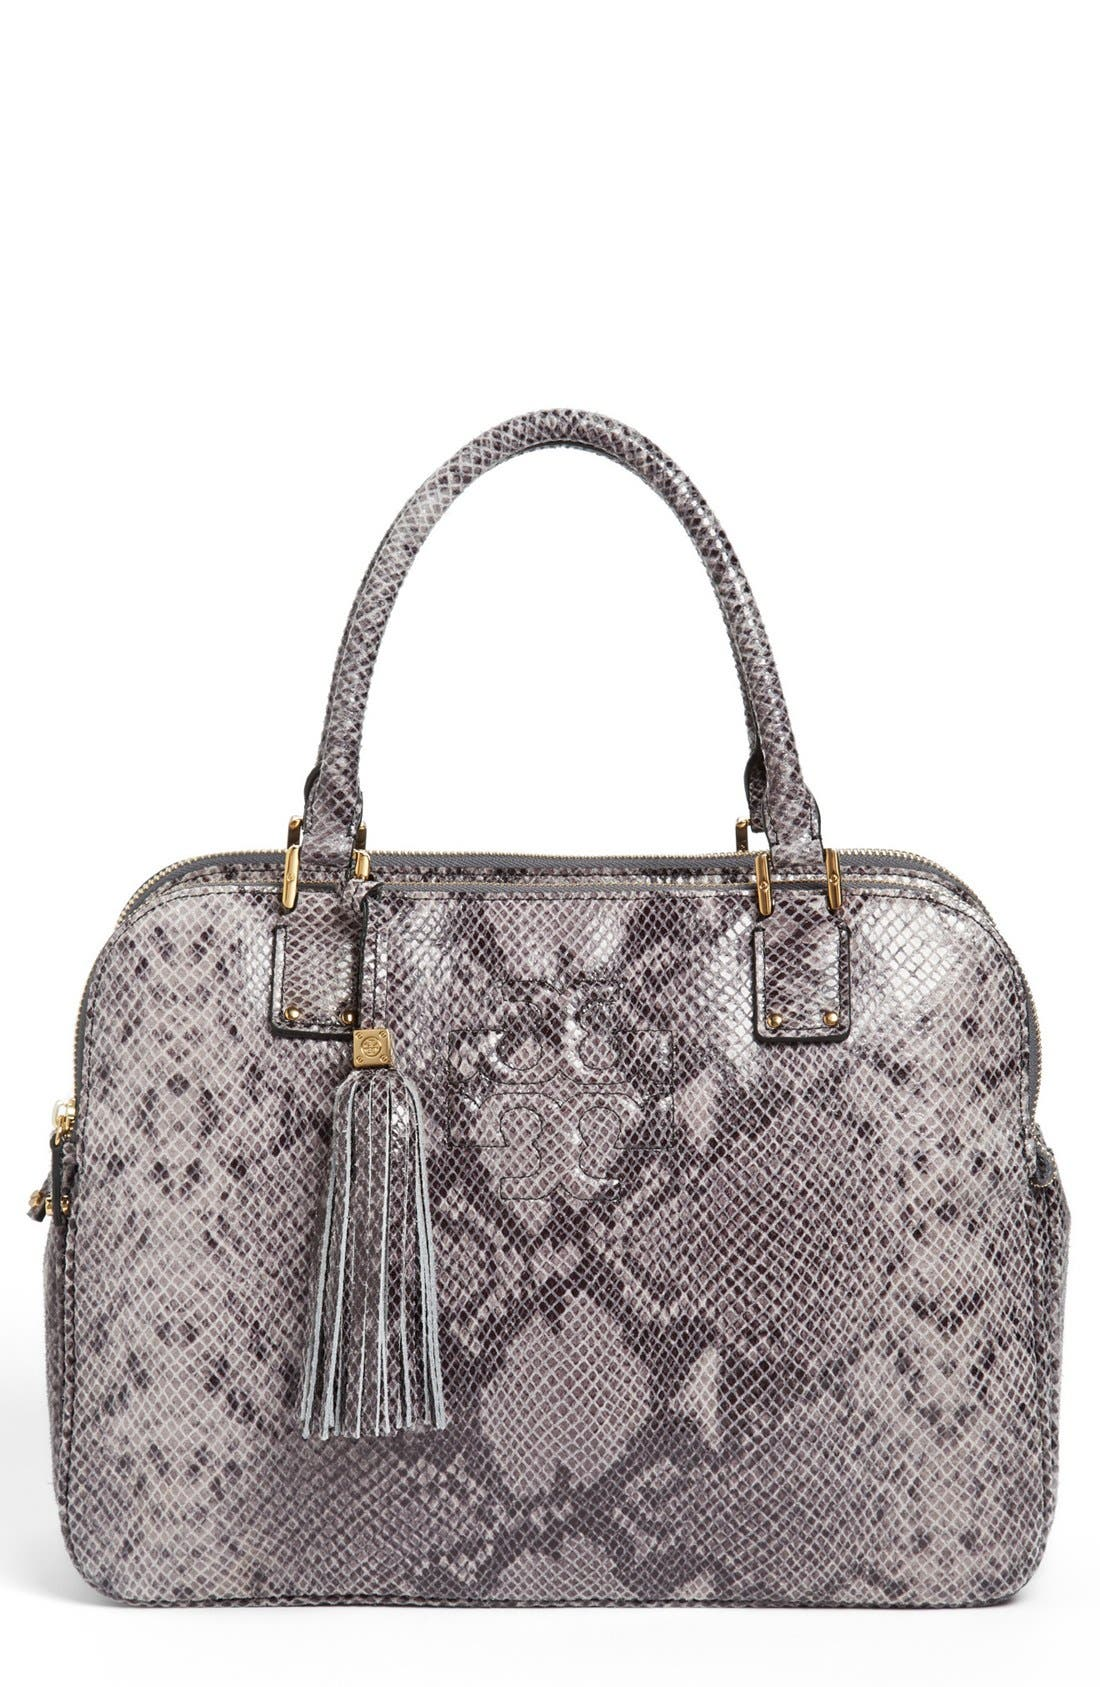 Main Image - Tory Burch 'Thea' Snake Print Satchel, Medium